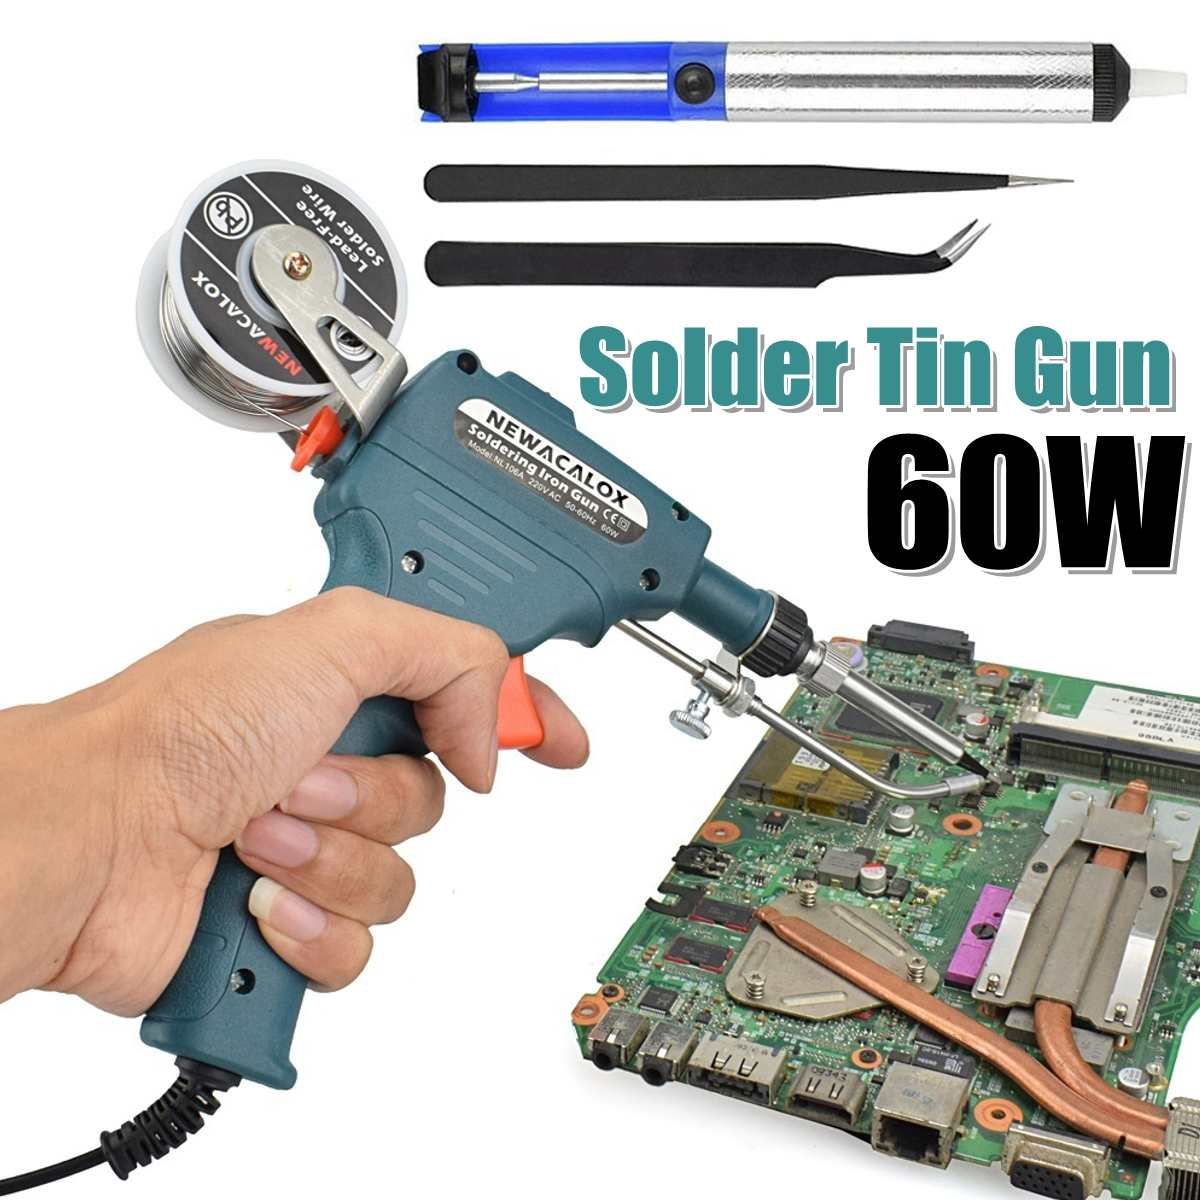 220V 60W Electric Soldering Iron Kit Internal Heating G-un Handheld Automatically Send Tin Welding Station Repair Tool